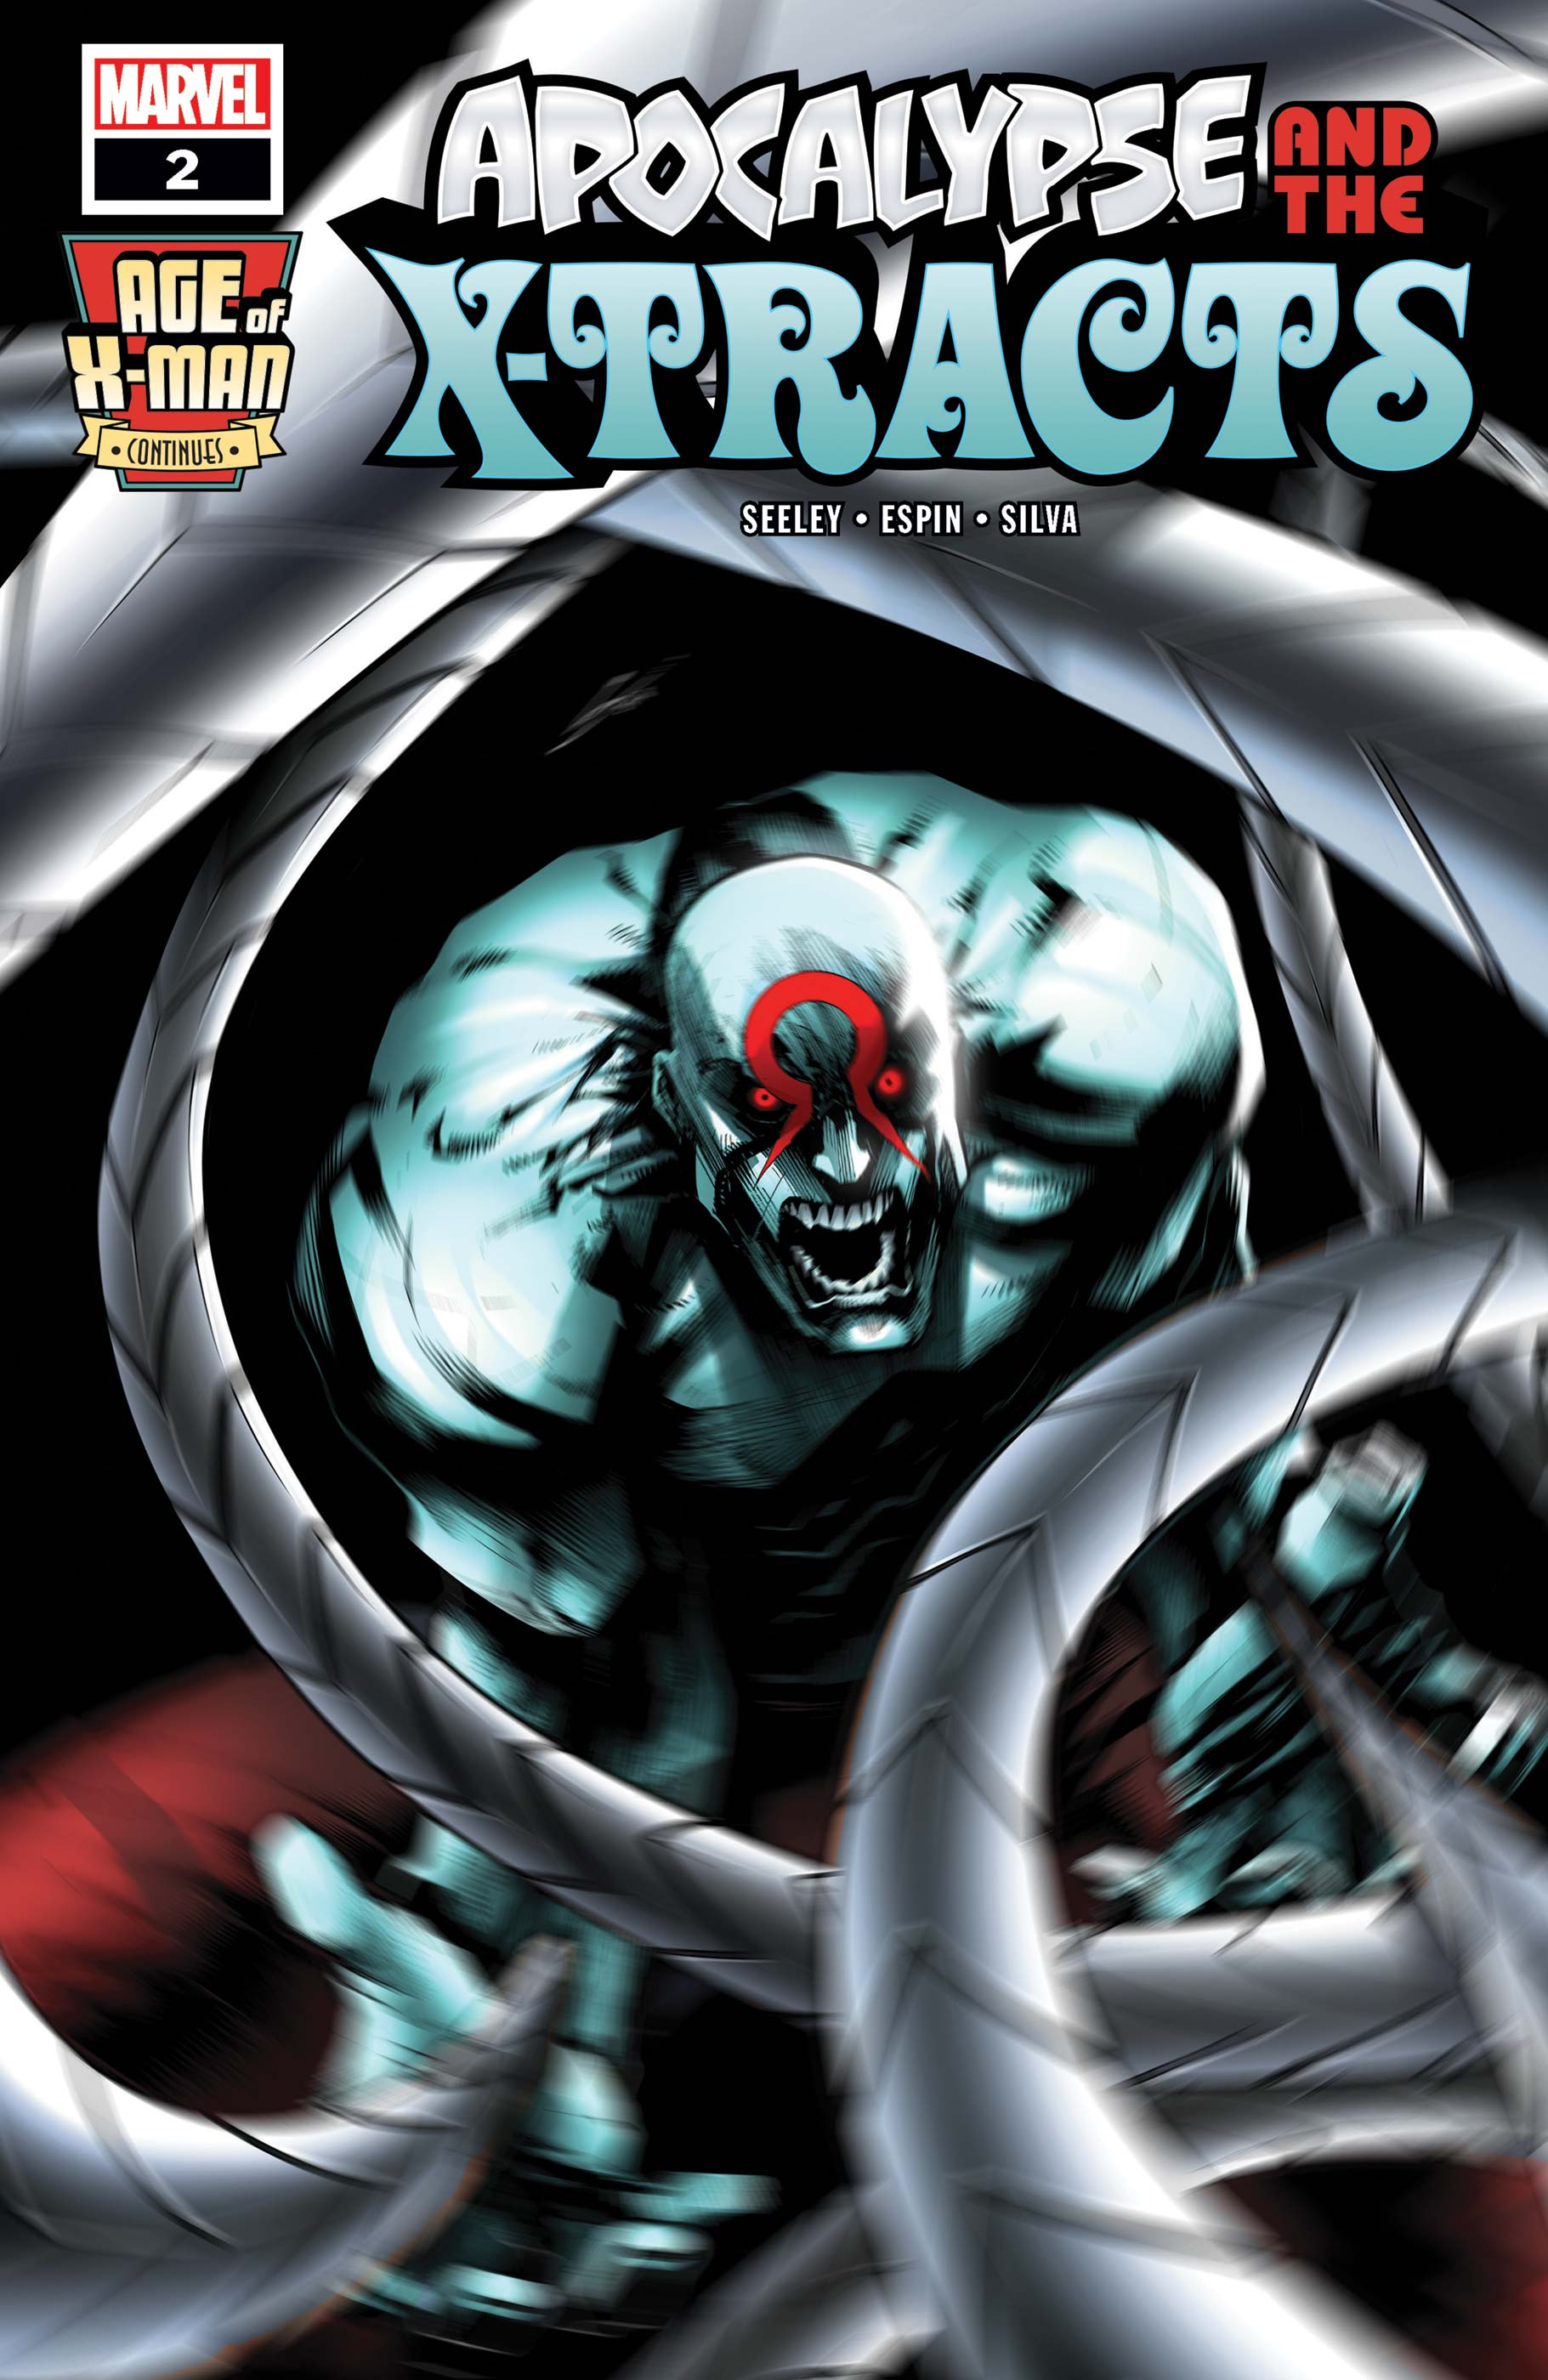 Age of X-Man: Apocalypse & the X-Tracts (2019) #2